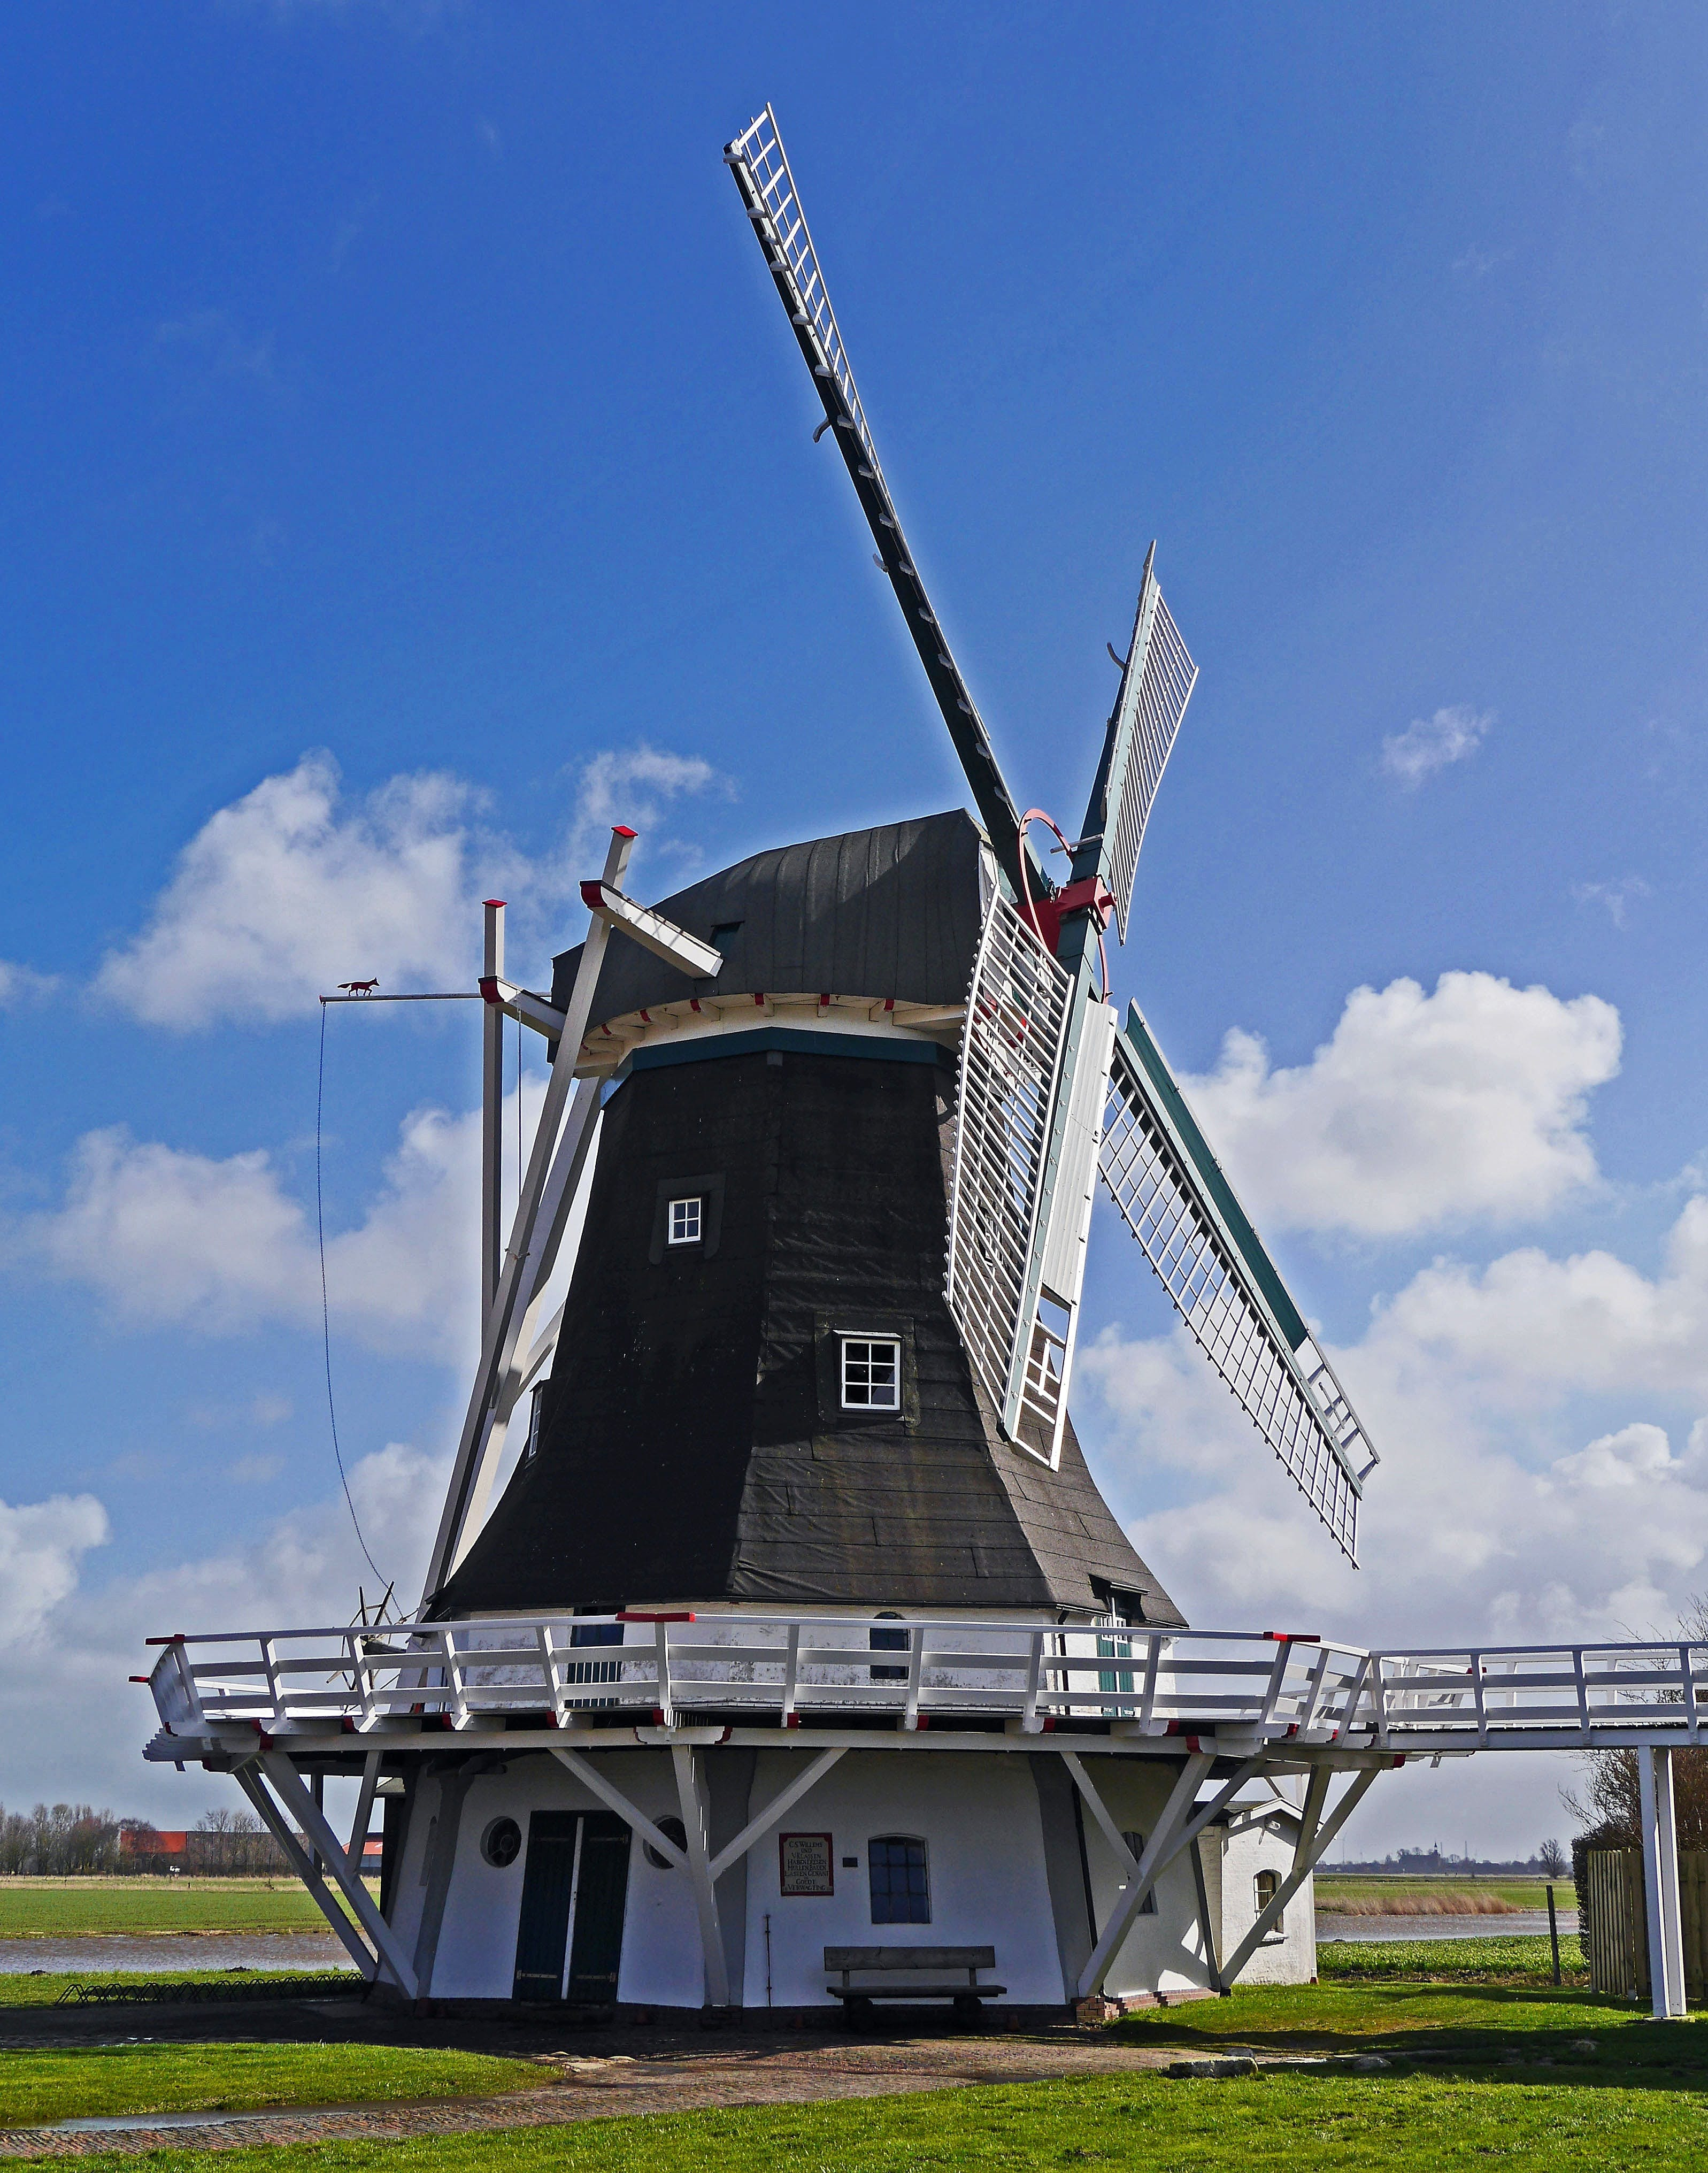 White and Black Wooden Windmill during Daytime